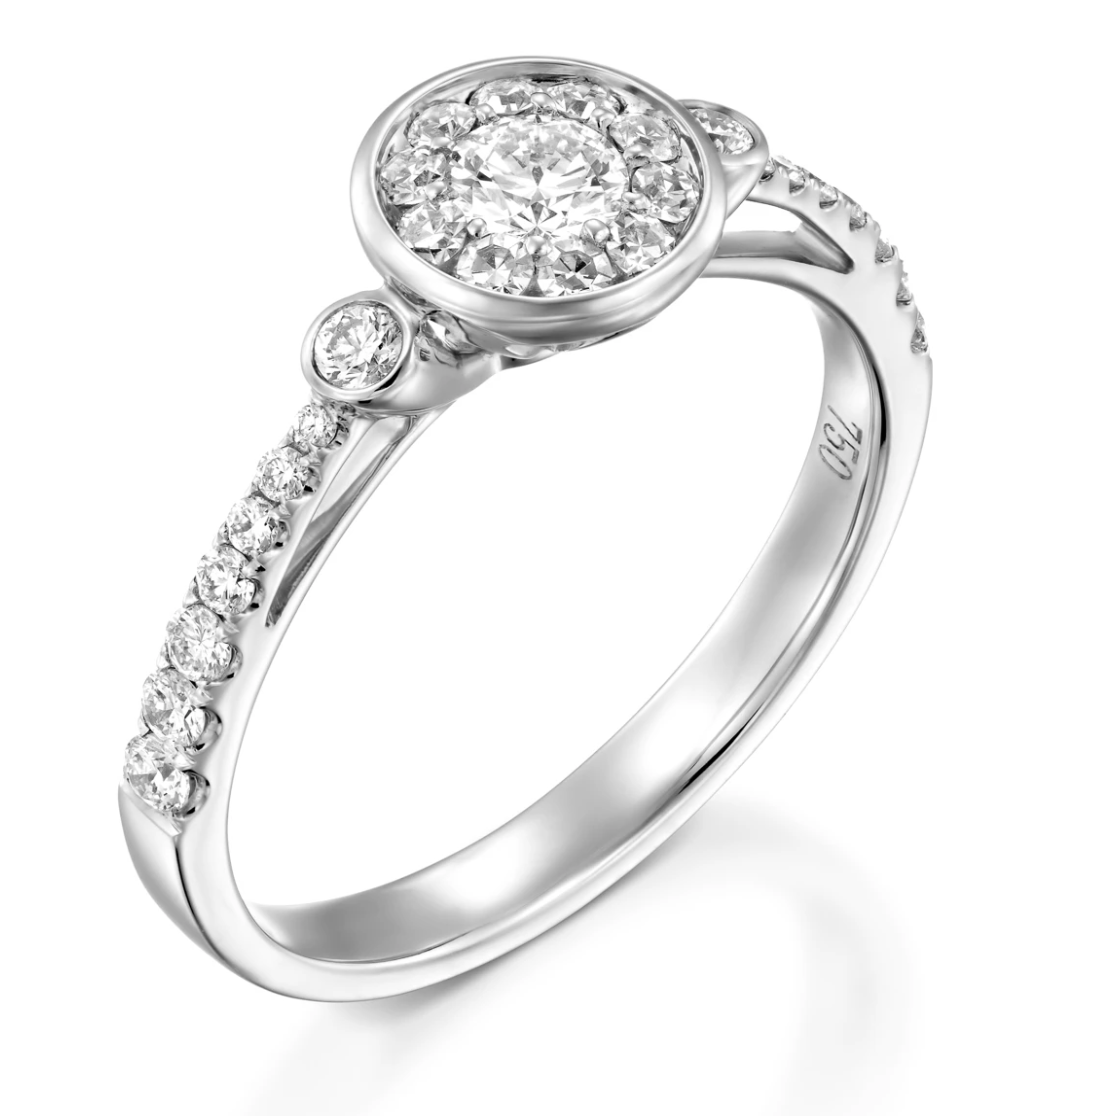 Diamond engagement halo